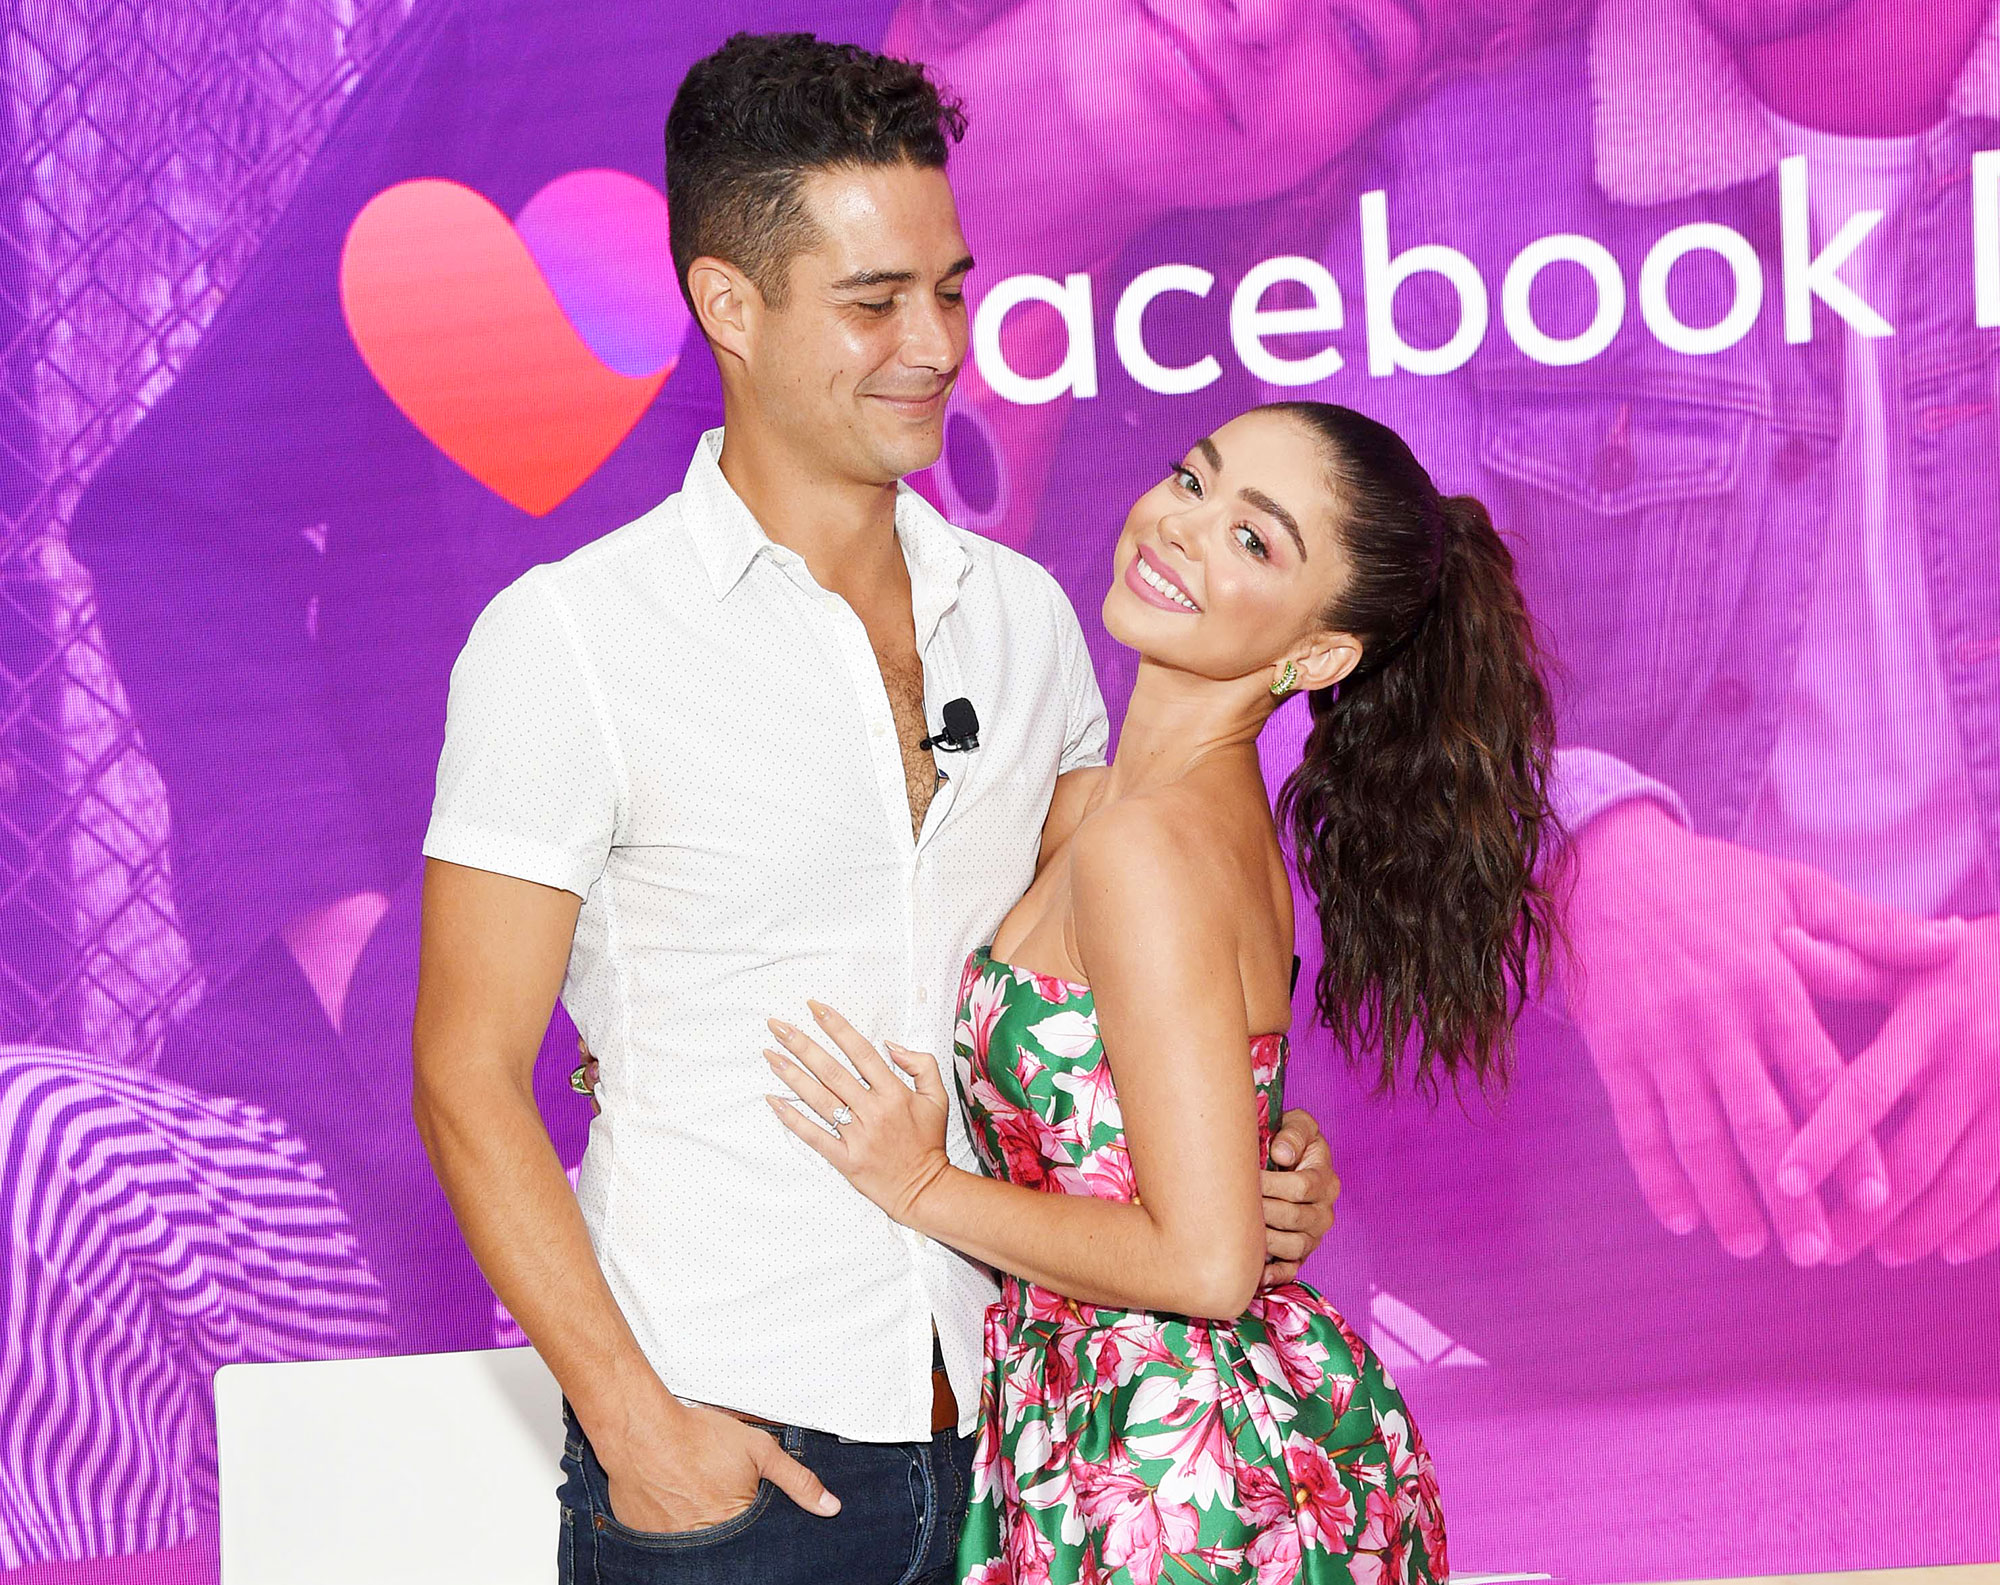 Wells Adams and Sarah Hyland at Facebook Dating Launch More Excited for Life Than Wedding Planning